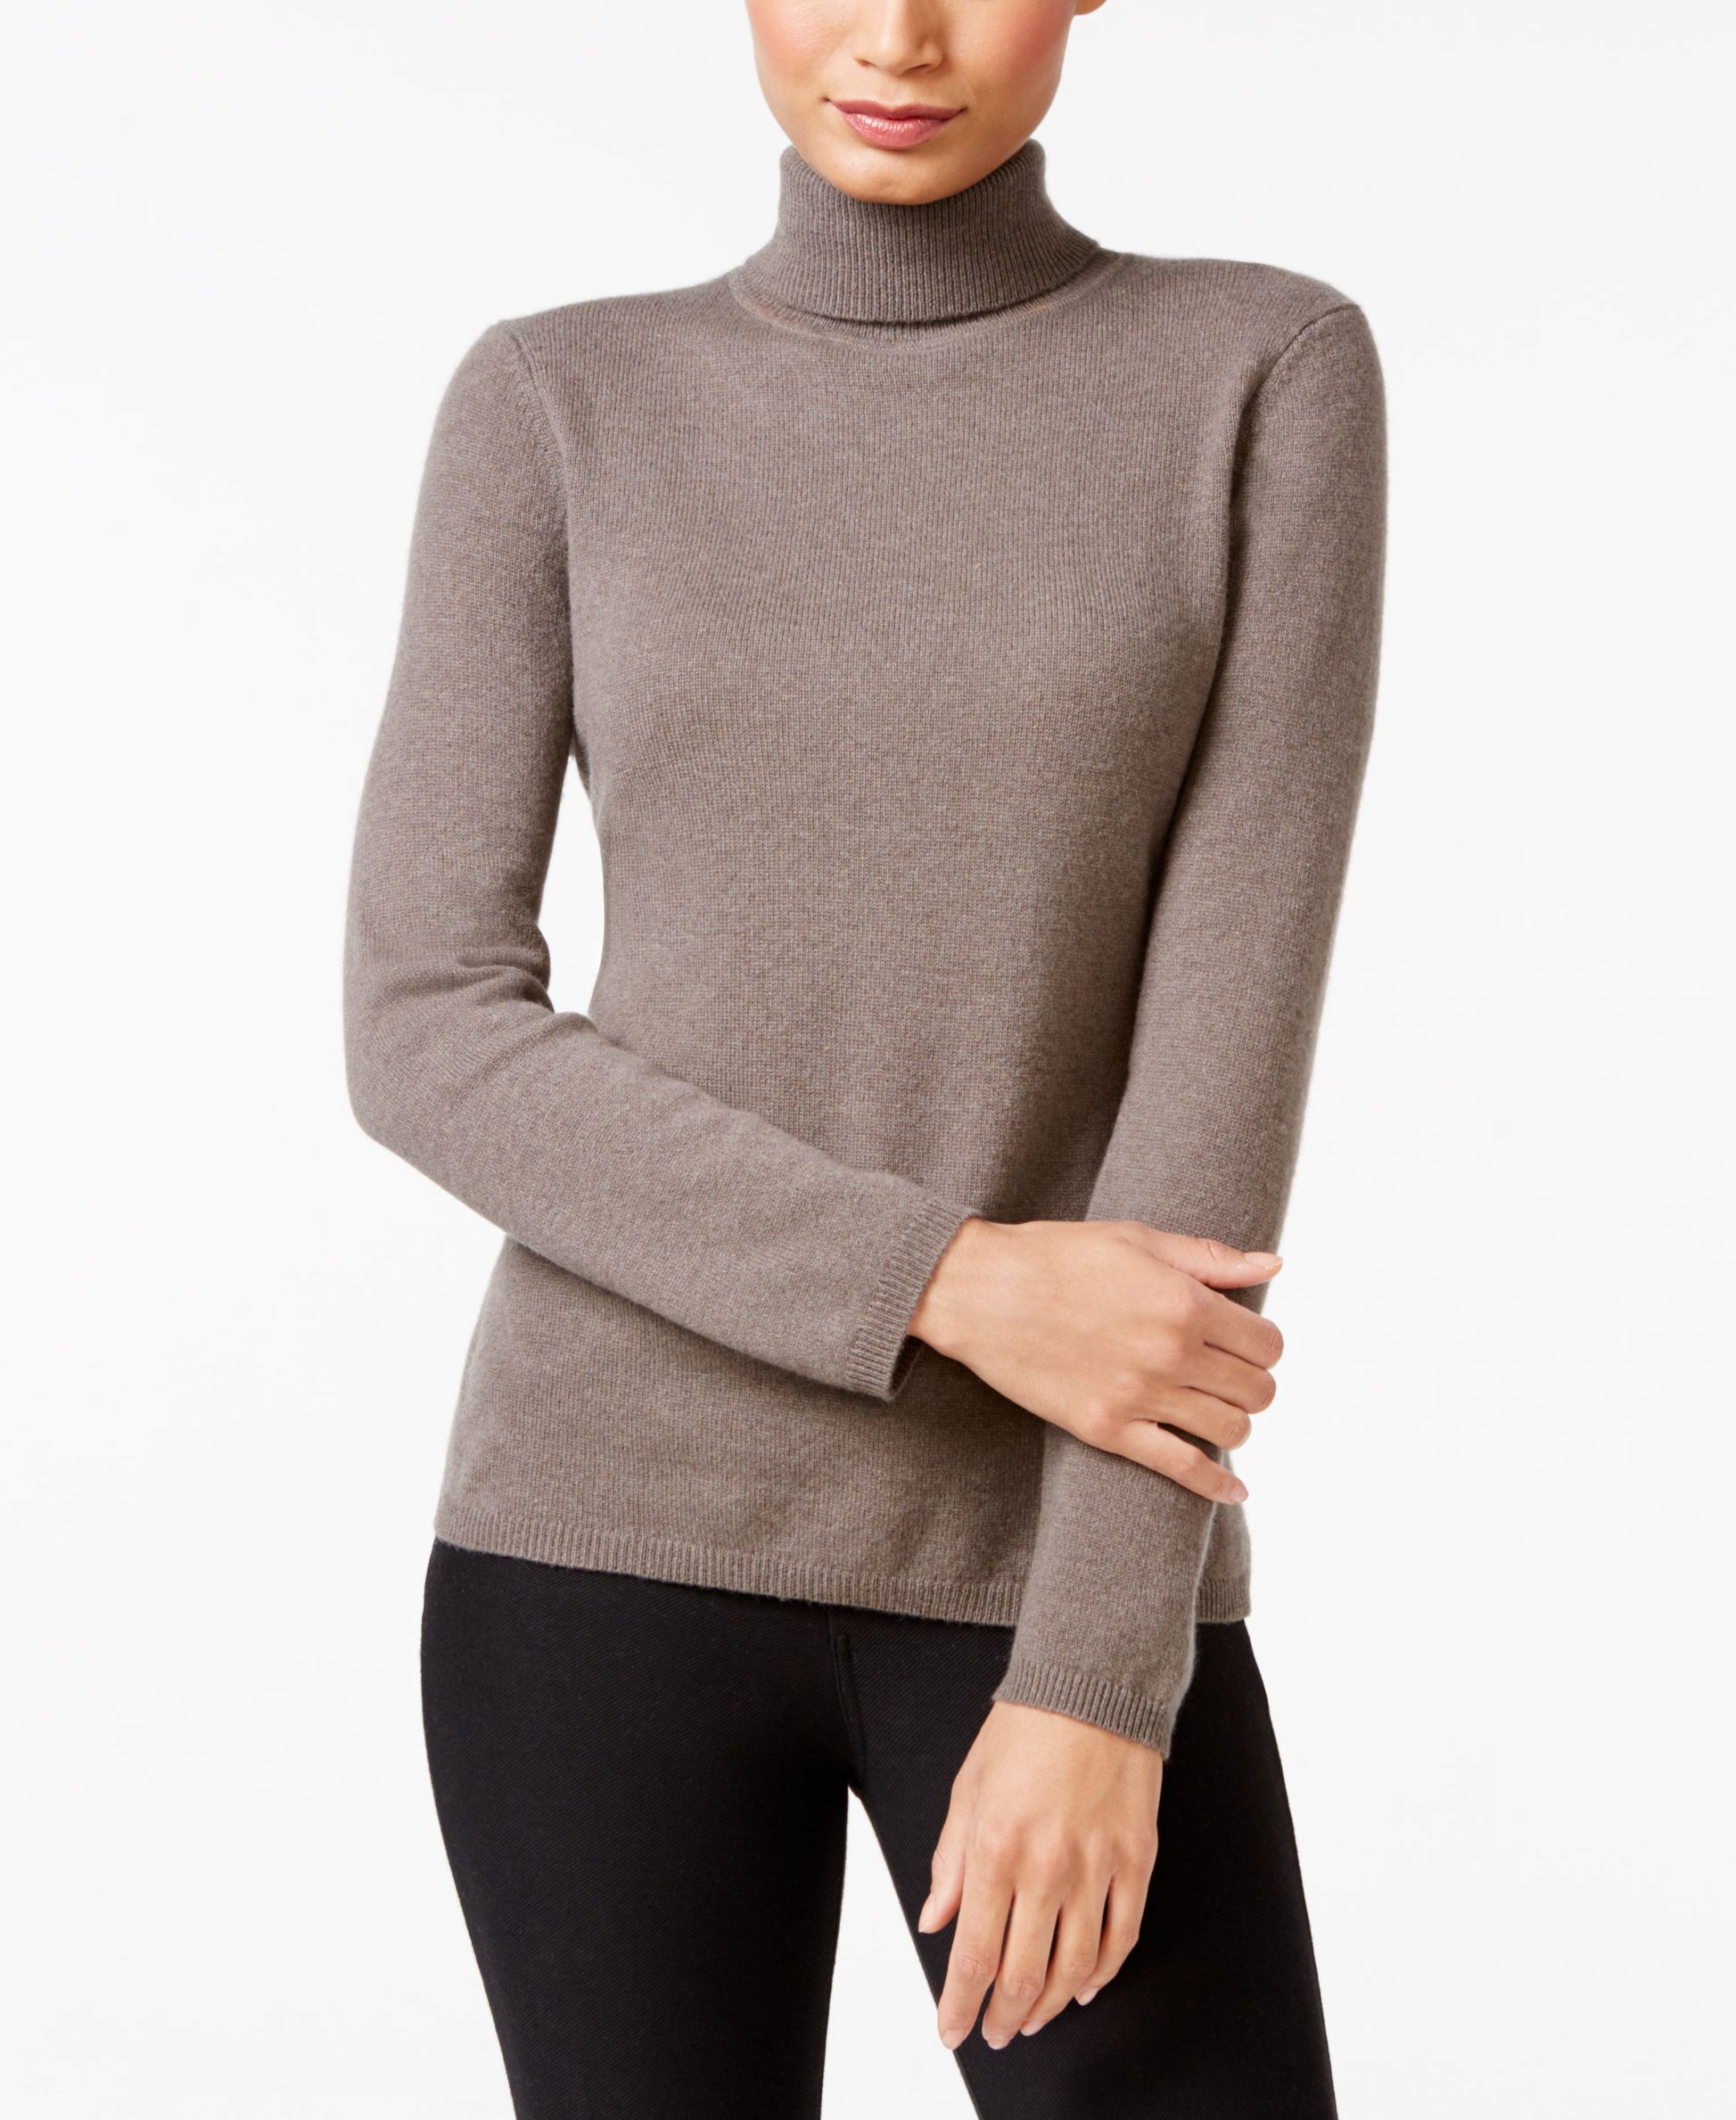 f089c660657 Charter Club Cashmere Turtleneck Sweater